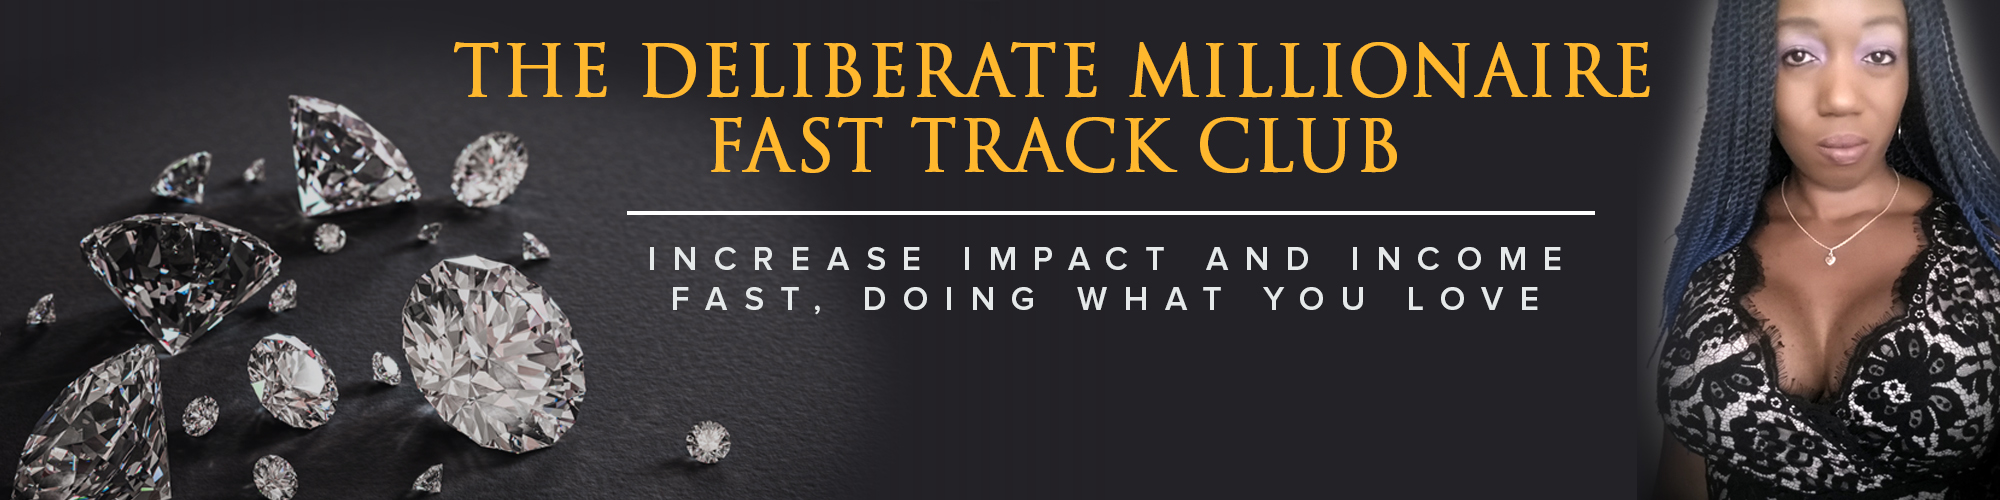 The Deliberate Millionaire Fast Track Club With Rosemary Nonny Knight